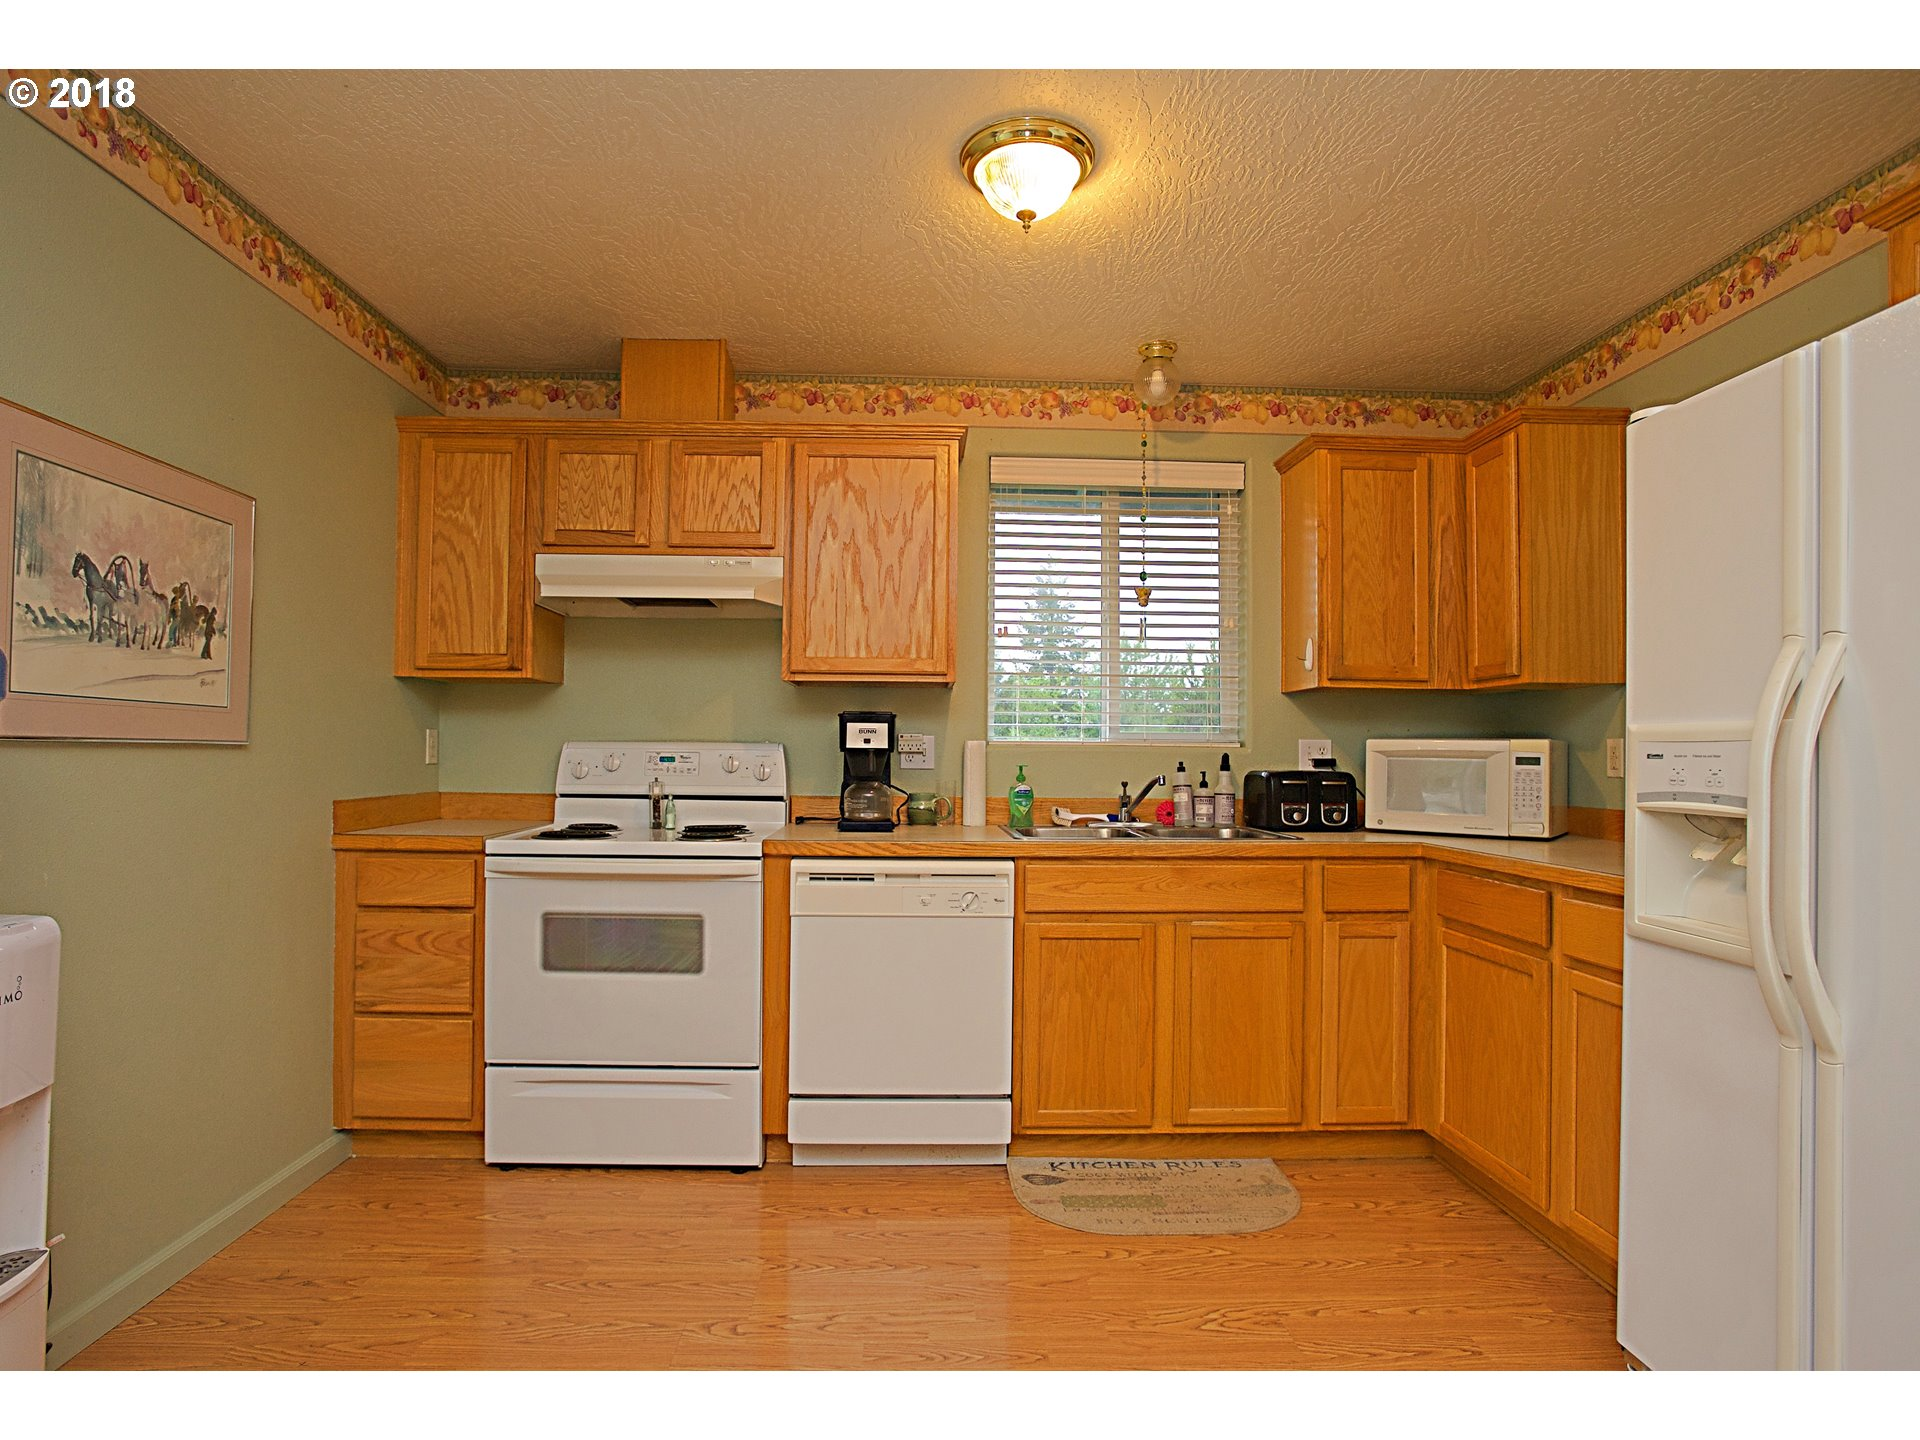 1242 sq. ft 3 bedrooms 2 bathrooms  House For Sale,Cottage Grove, OR